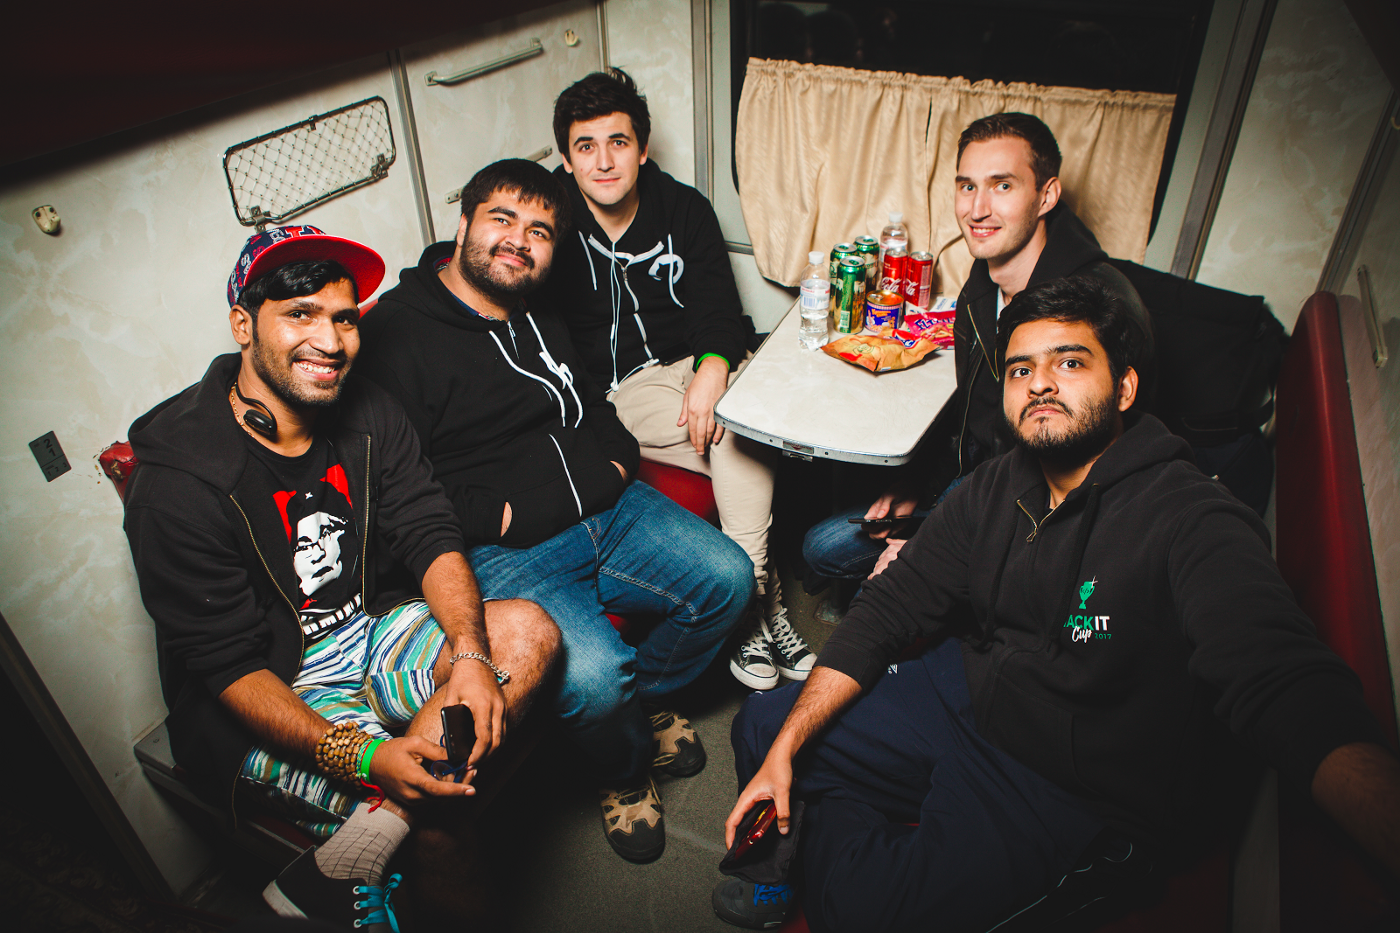 Sandeep Singh, Parth Malhotra, Patrik Fehrenbach, Julian Keller and Shahmeer Amir inside a compartment of the iconic Soviet 'platskarta' economy class railway car, temporary turned into a party train from Kharkiv to Kyiv